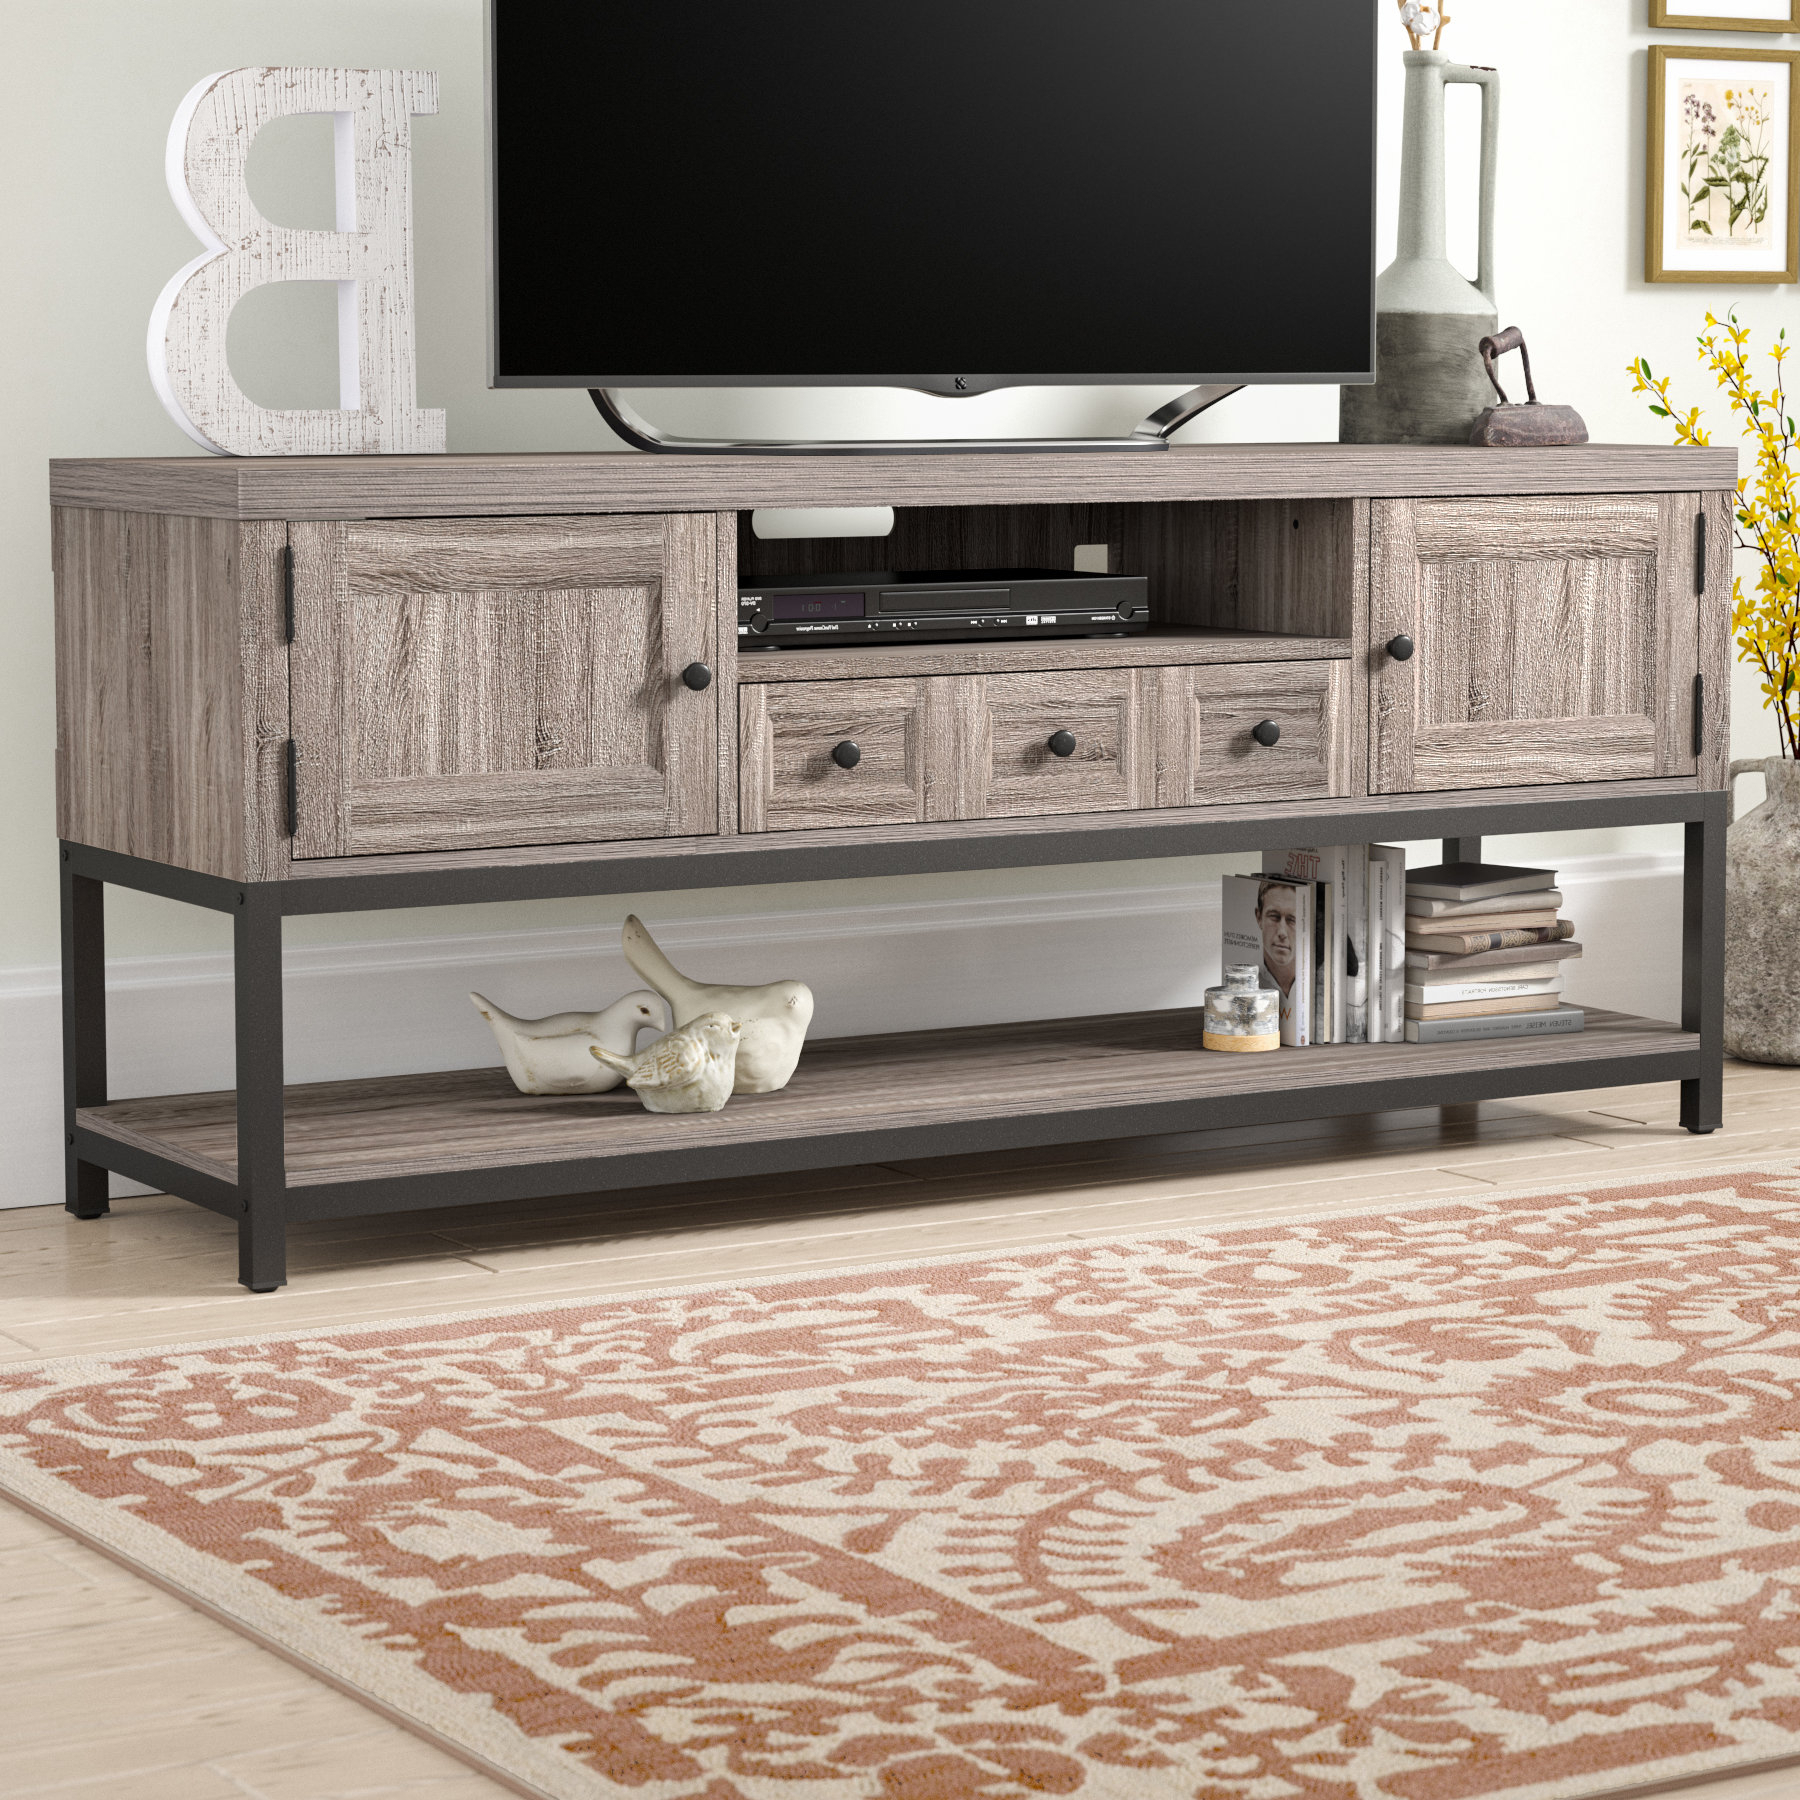 Metal Tv Stands (View 9 of 20)